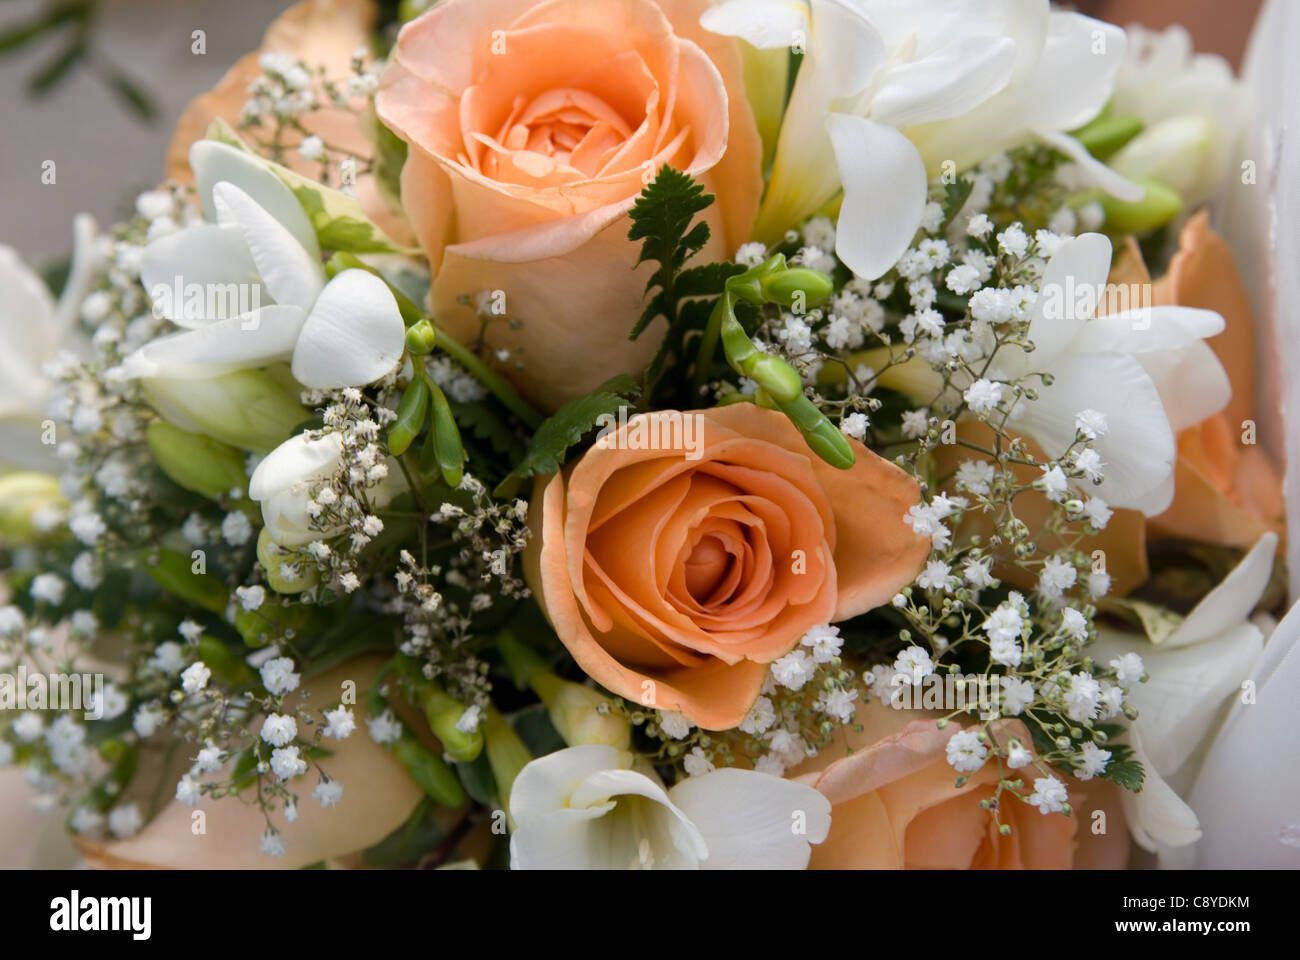 Peach White And Green Bridal Bouquets Stock Photo Alamy